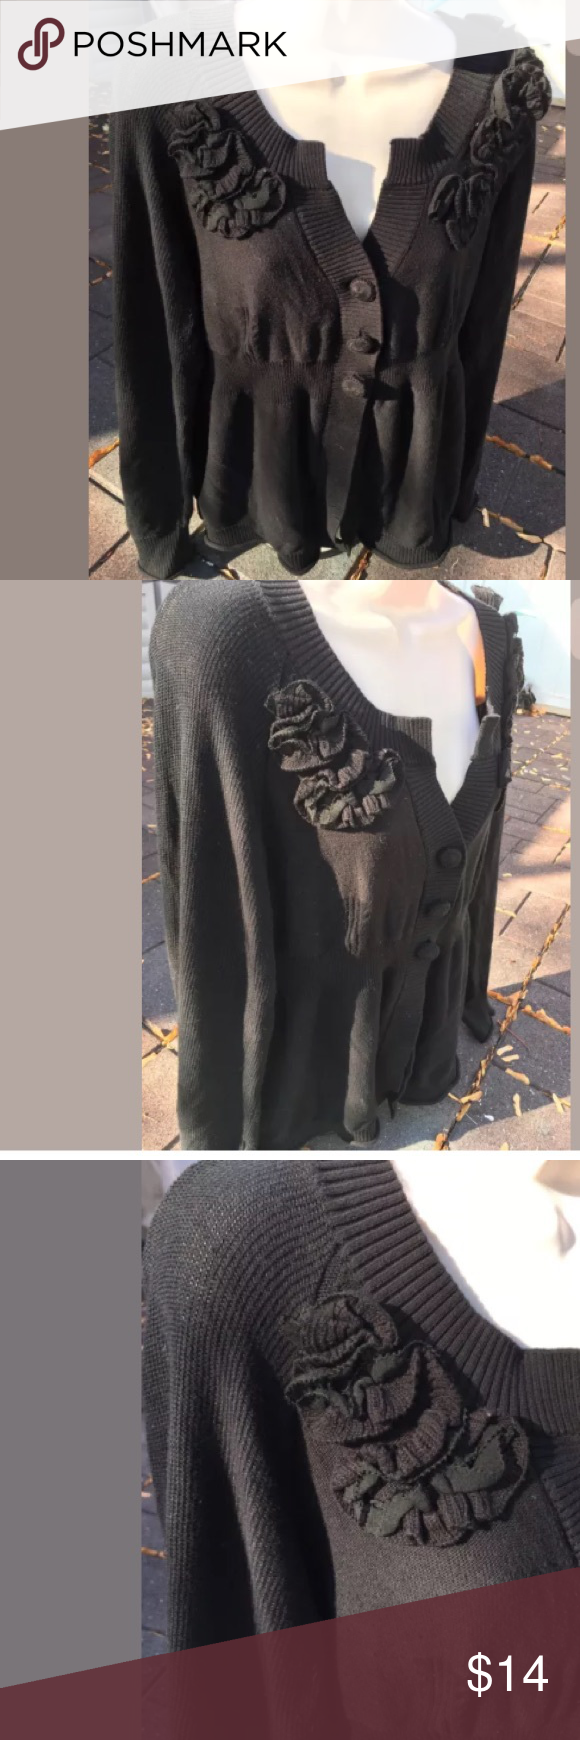 Gorgeous black DKNY Cardigan Size Medium DKNY Knit Floral Cardigan Size Medium Gorgeous black DKNY Cardigan, Button Up. Flower embellishments. Simply classy and stunning! Gently worn DKNY Sweaters Cardigans